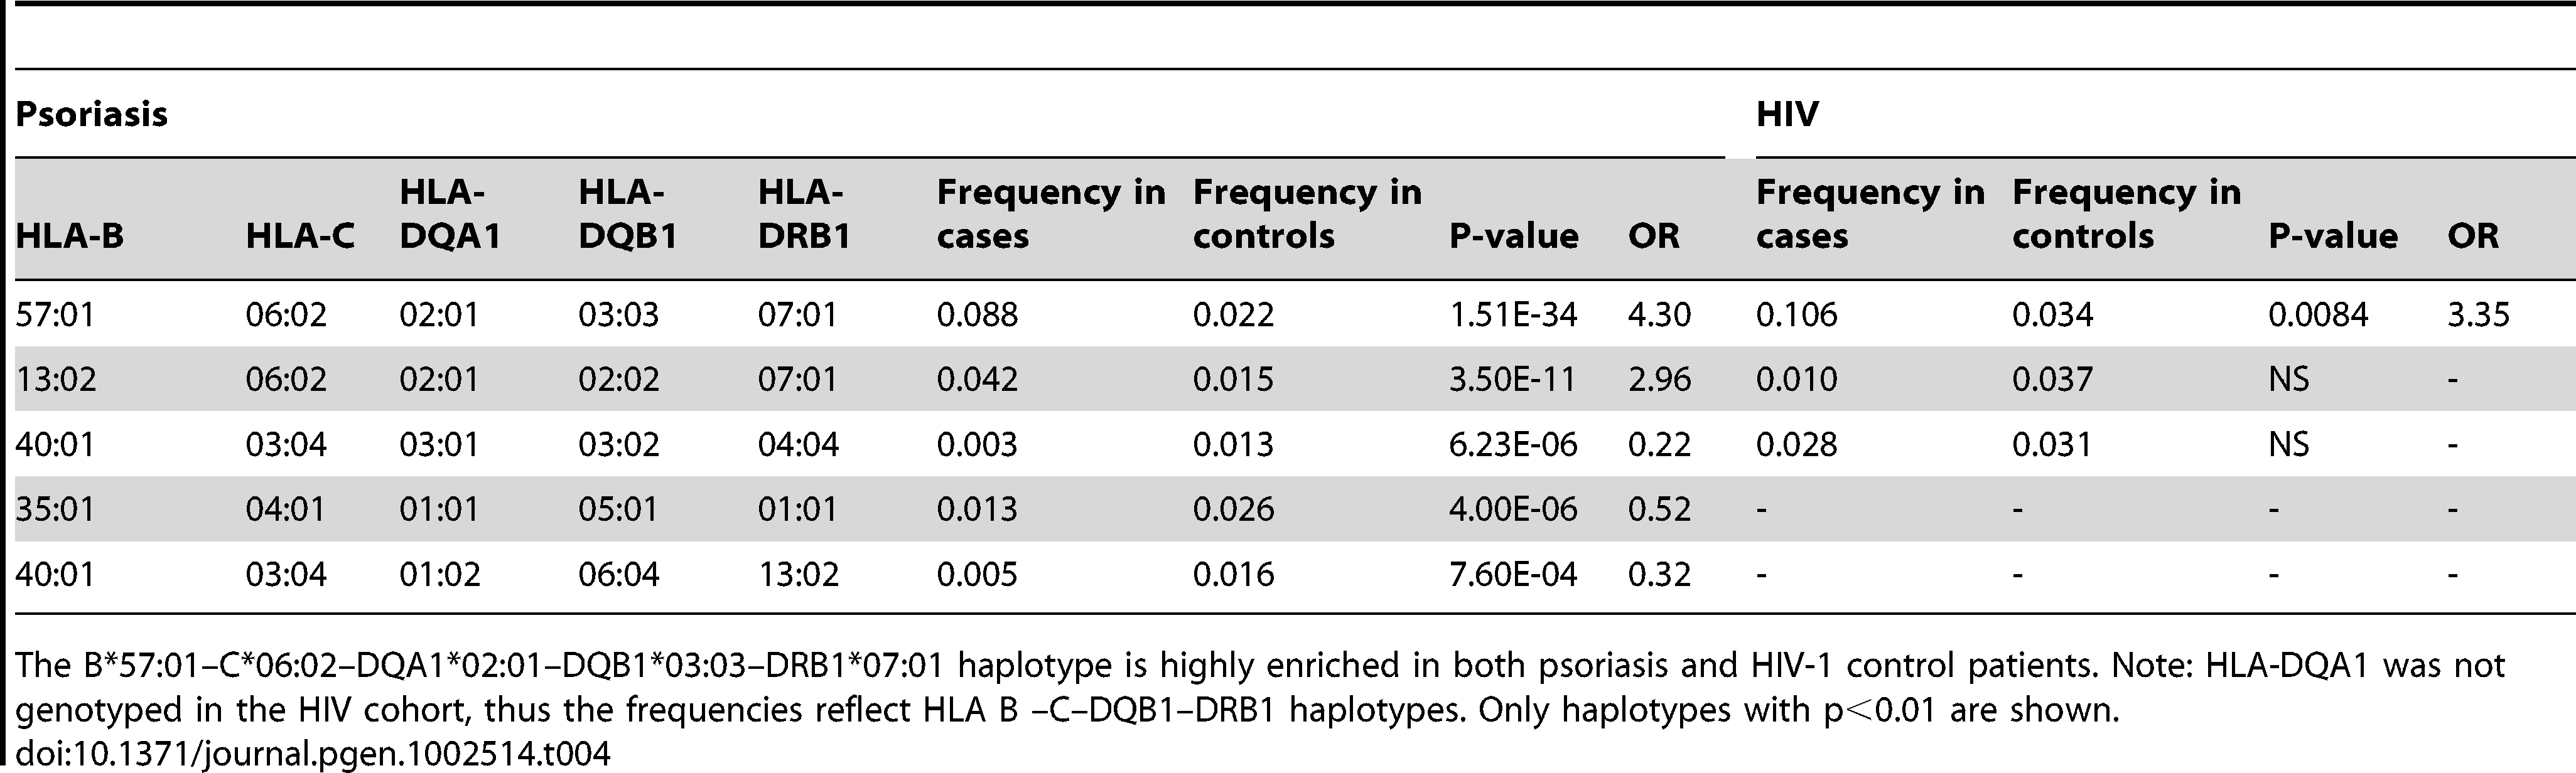 Association testing of extended class I and II HLA haplotypes with psoriasis and HIV-1 control.